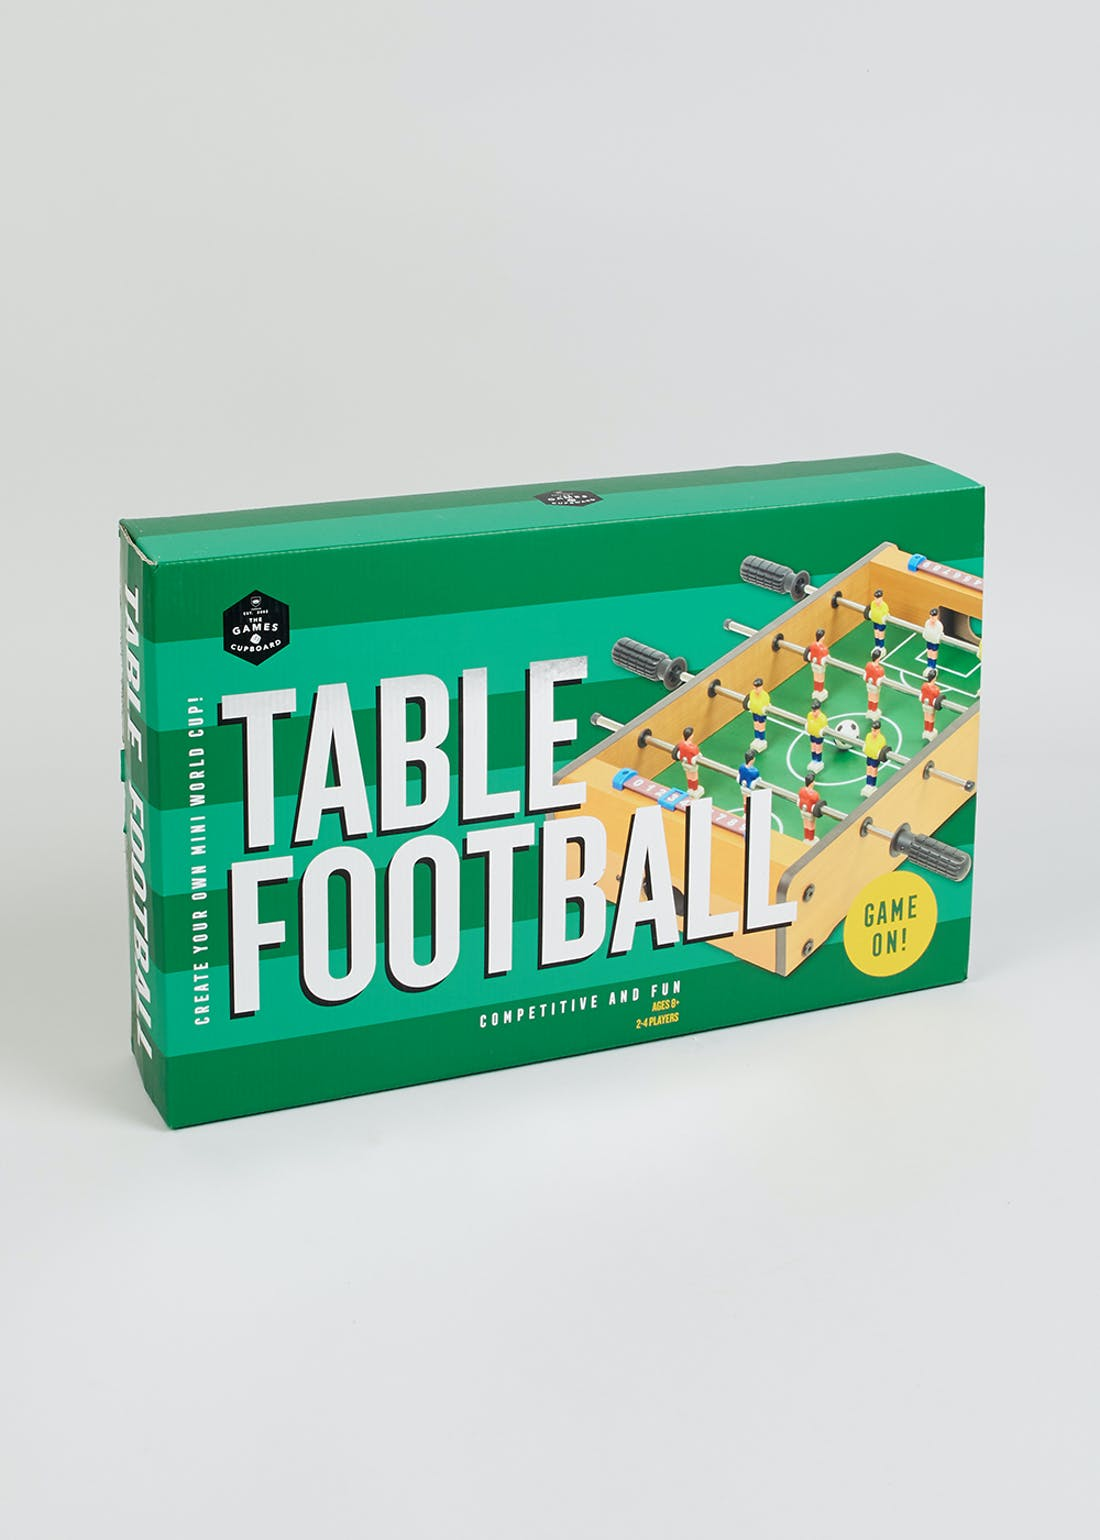 Table Football (51cm x 32cm x 10cm)